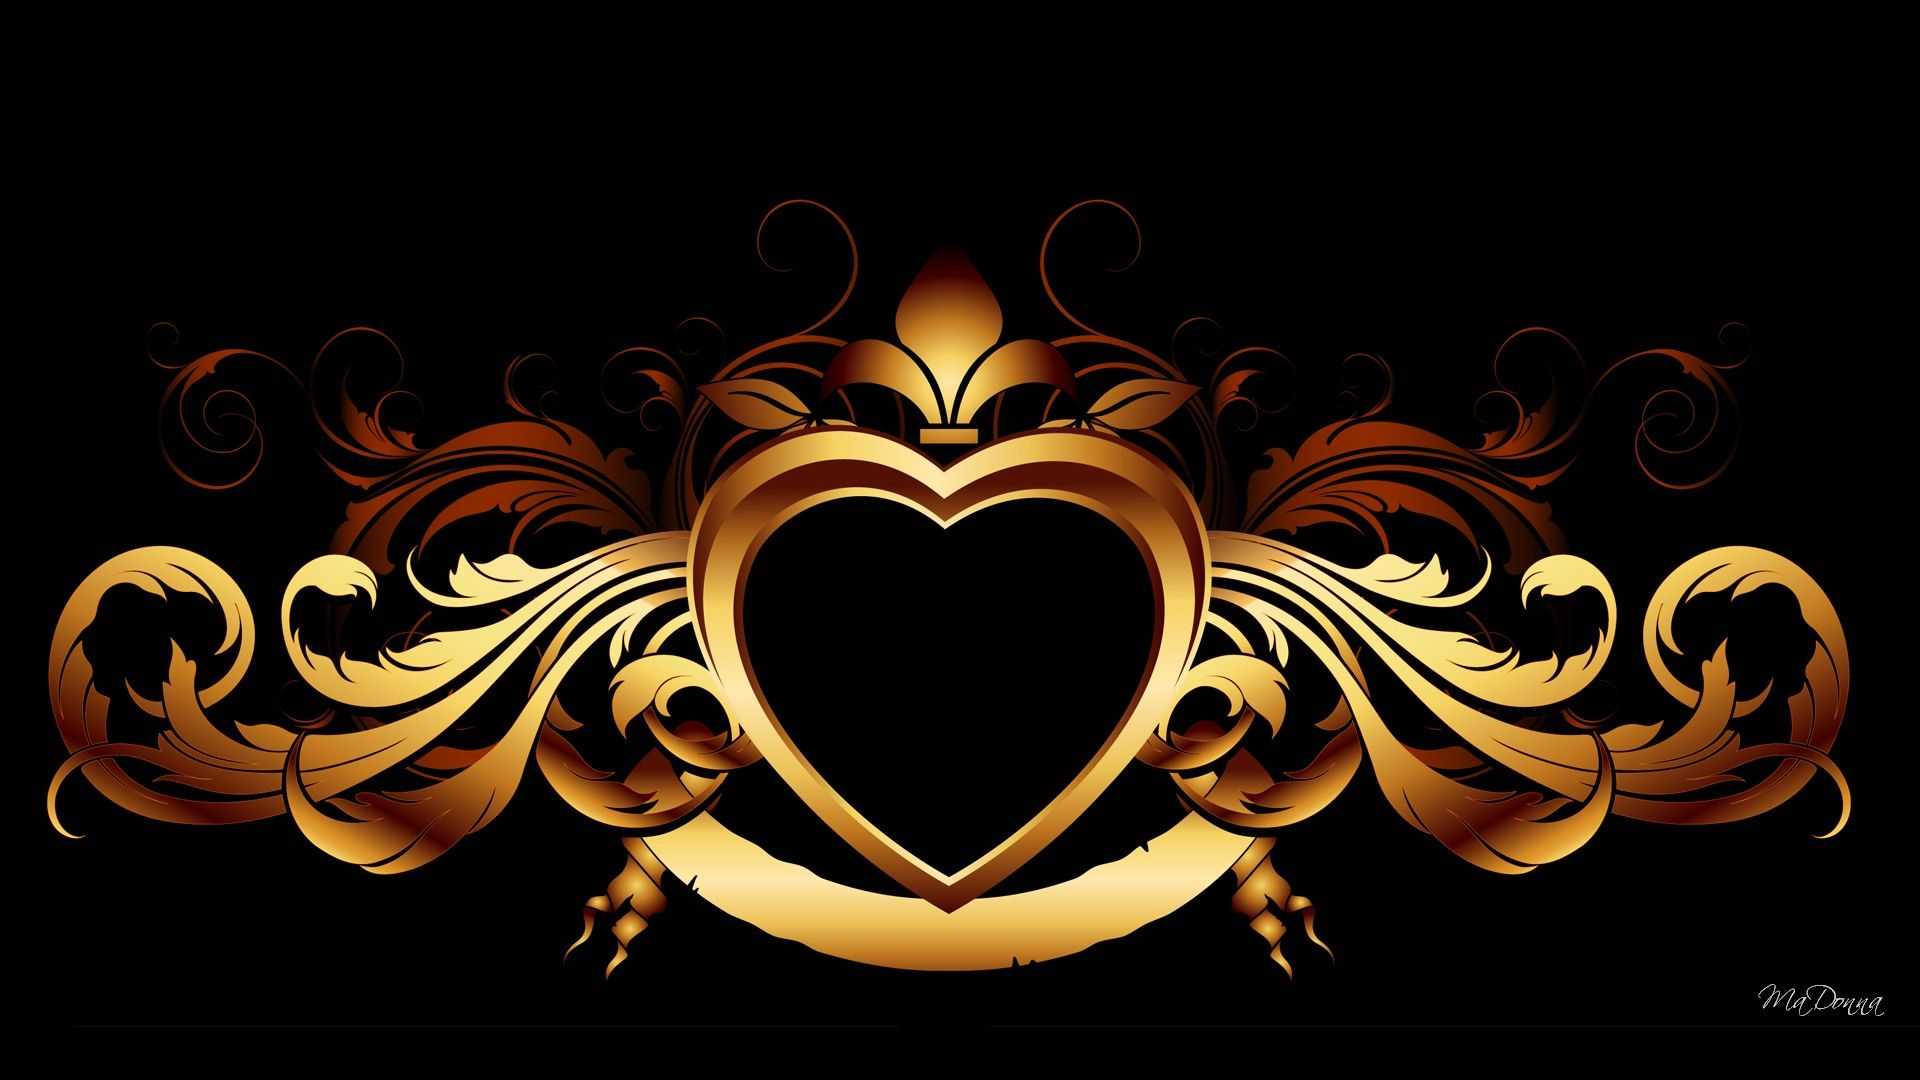 Gold Heart On Black wallpapers HD free 299435 Gold